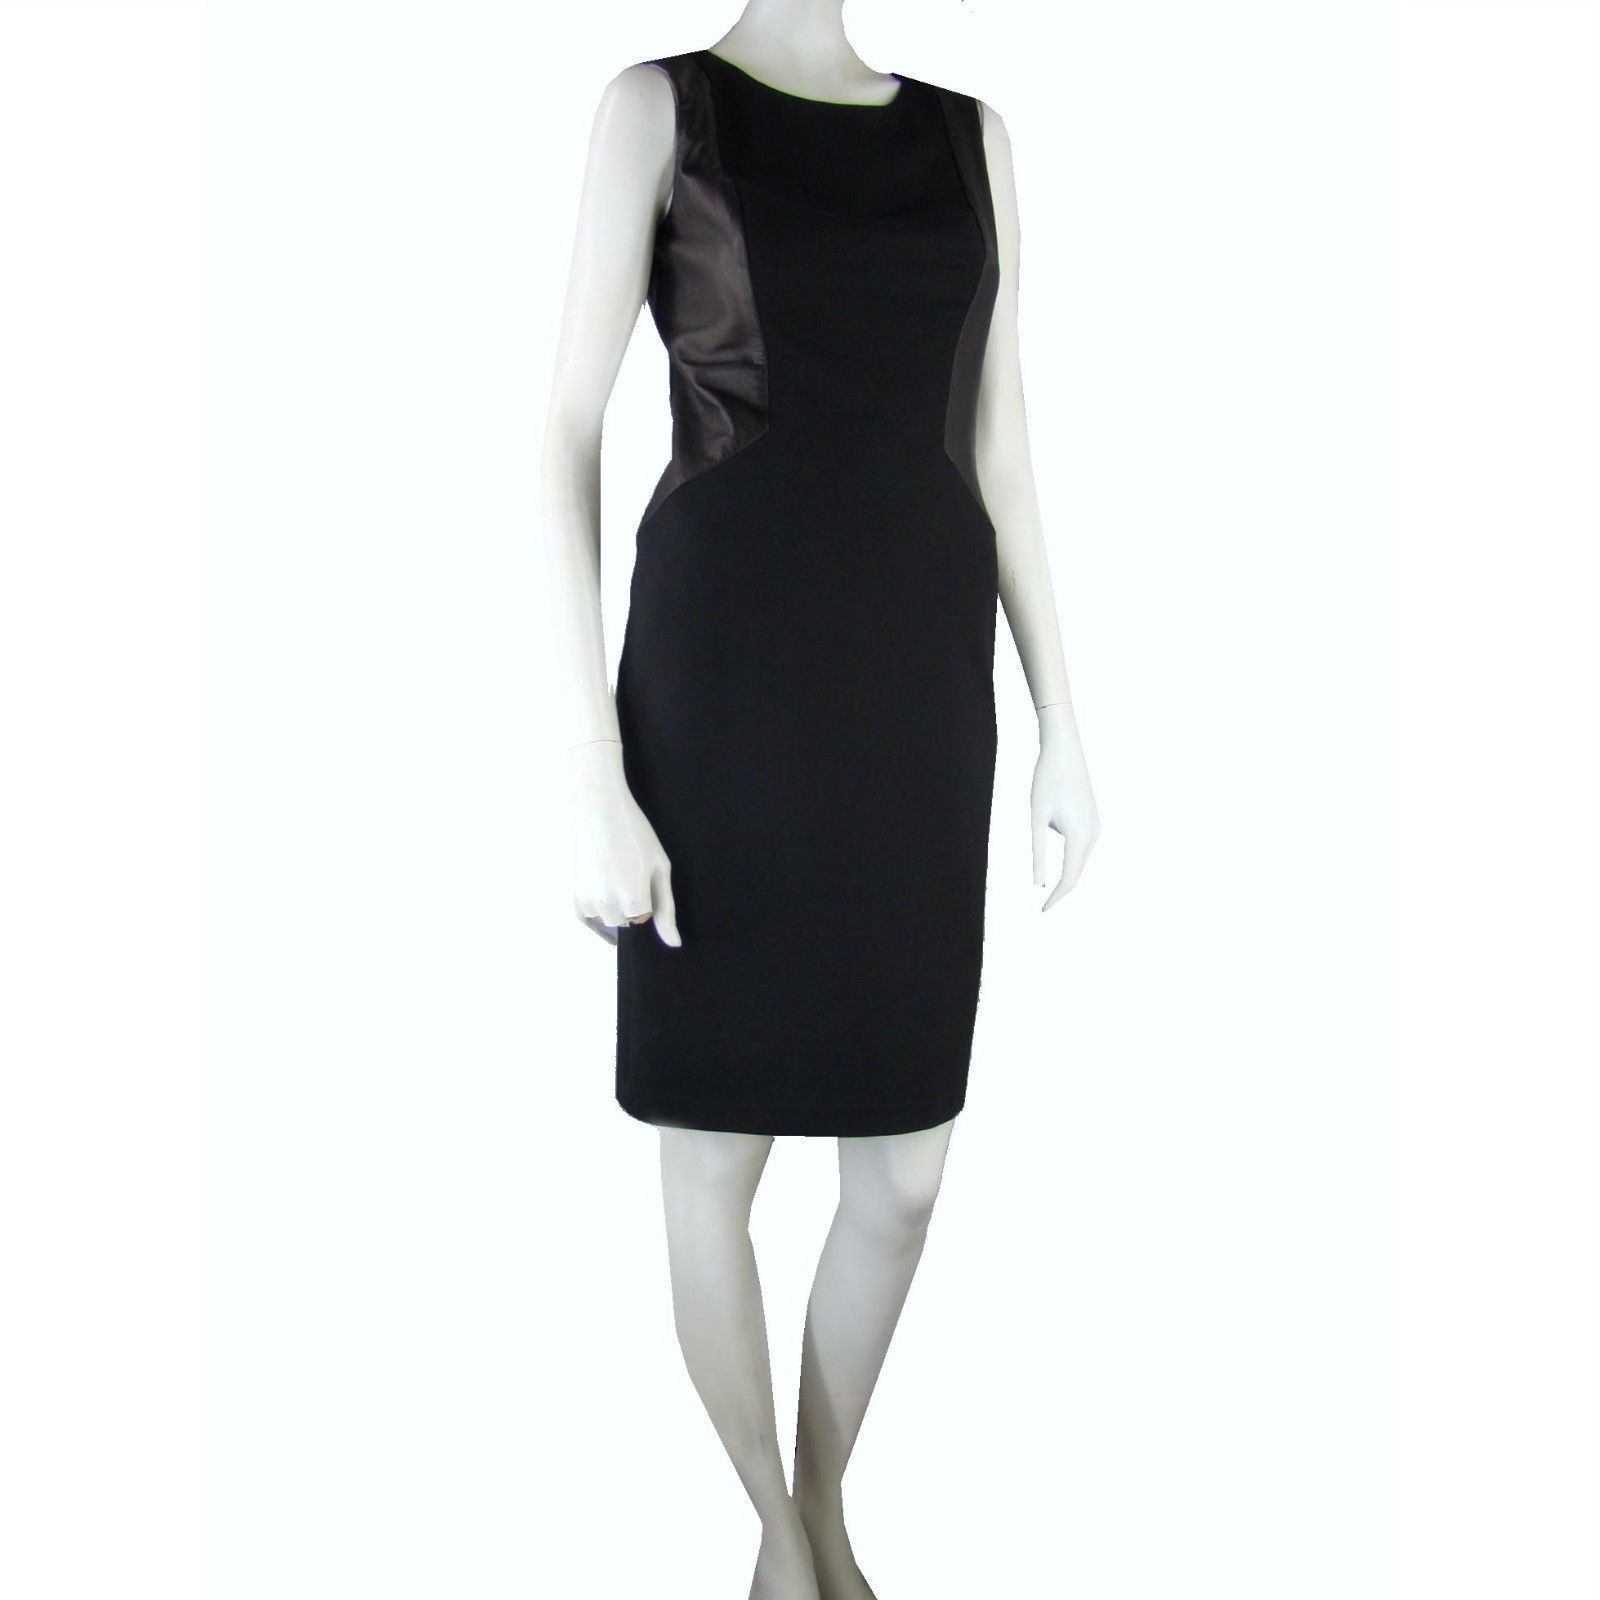 Primary image for HALSTON HERITAGE Stretch Rayon Sheath  Dress 6 Sleeveless Leather Panels Wiggle